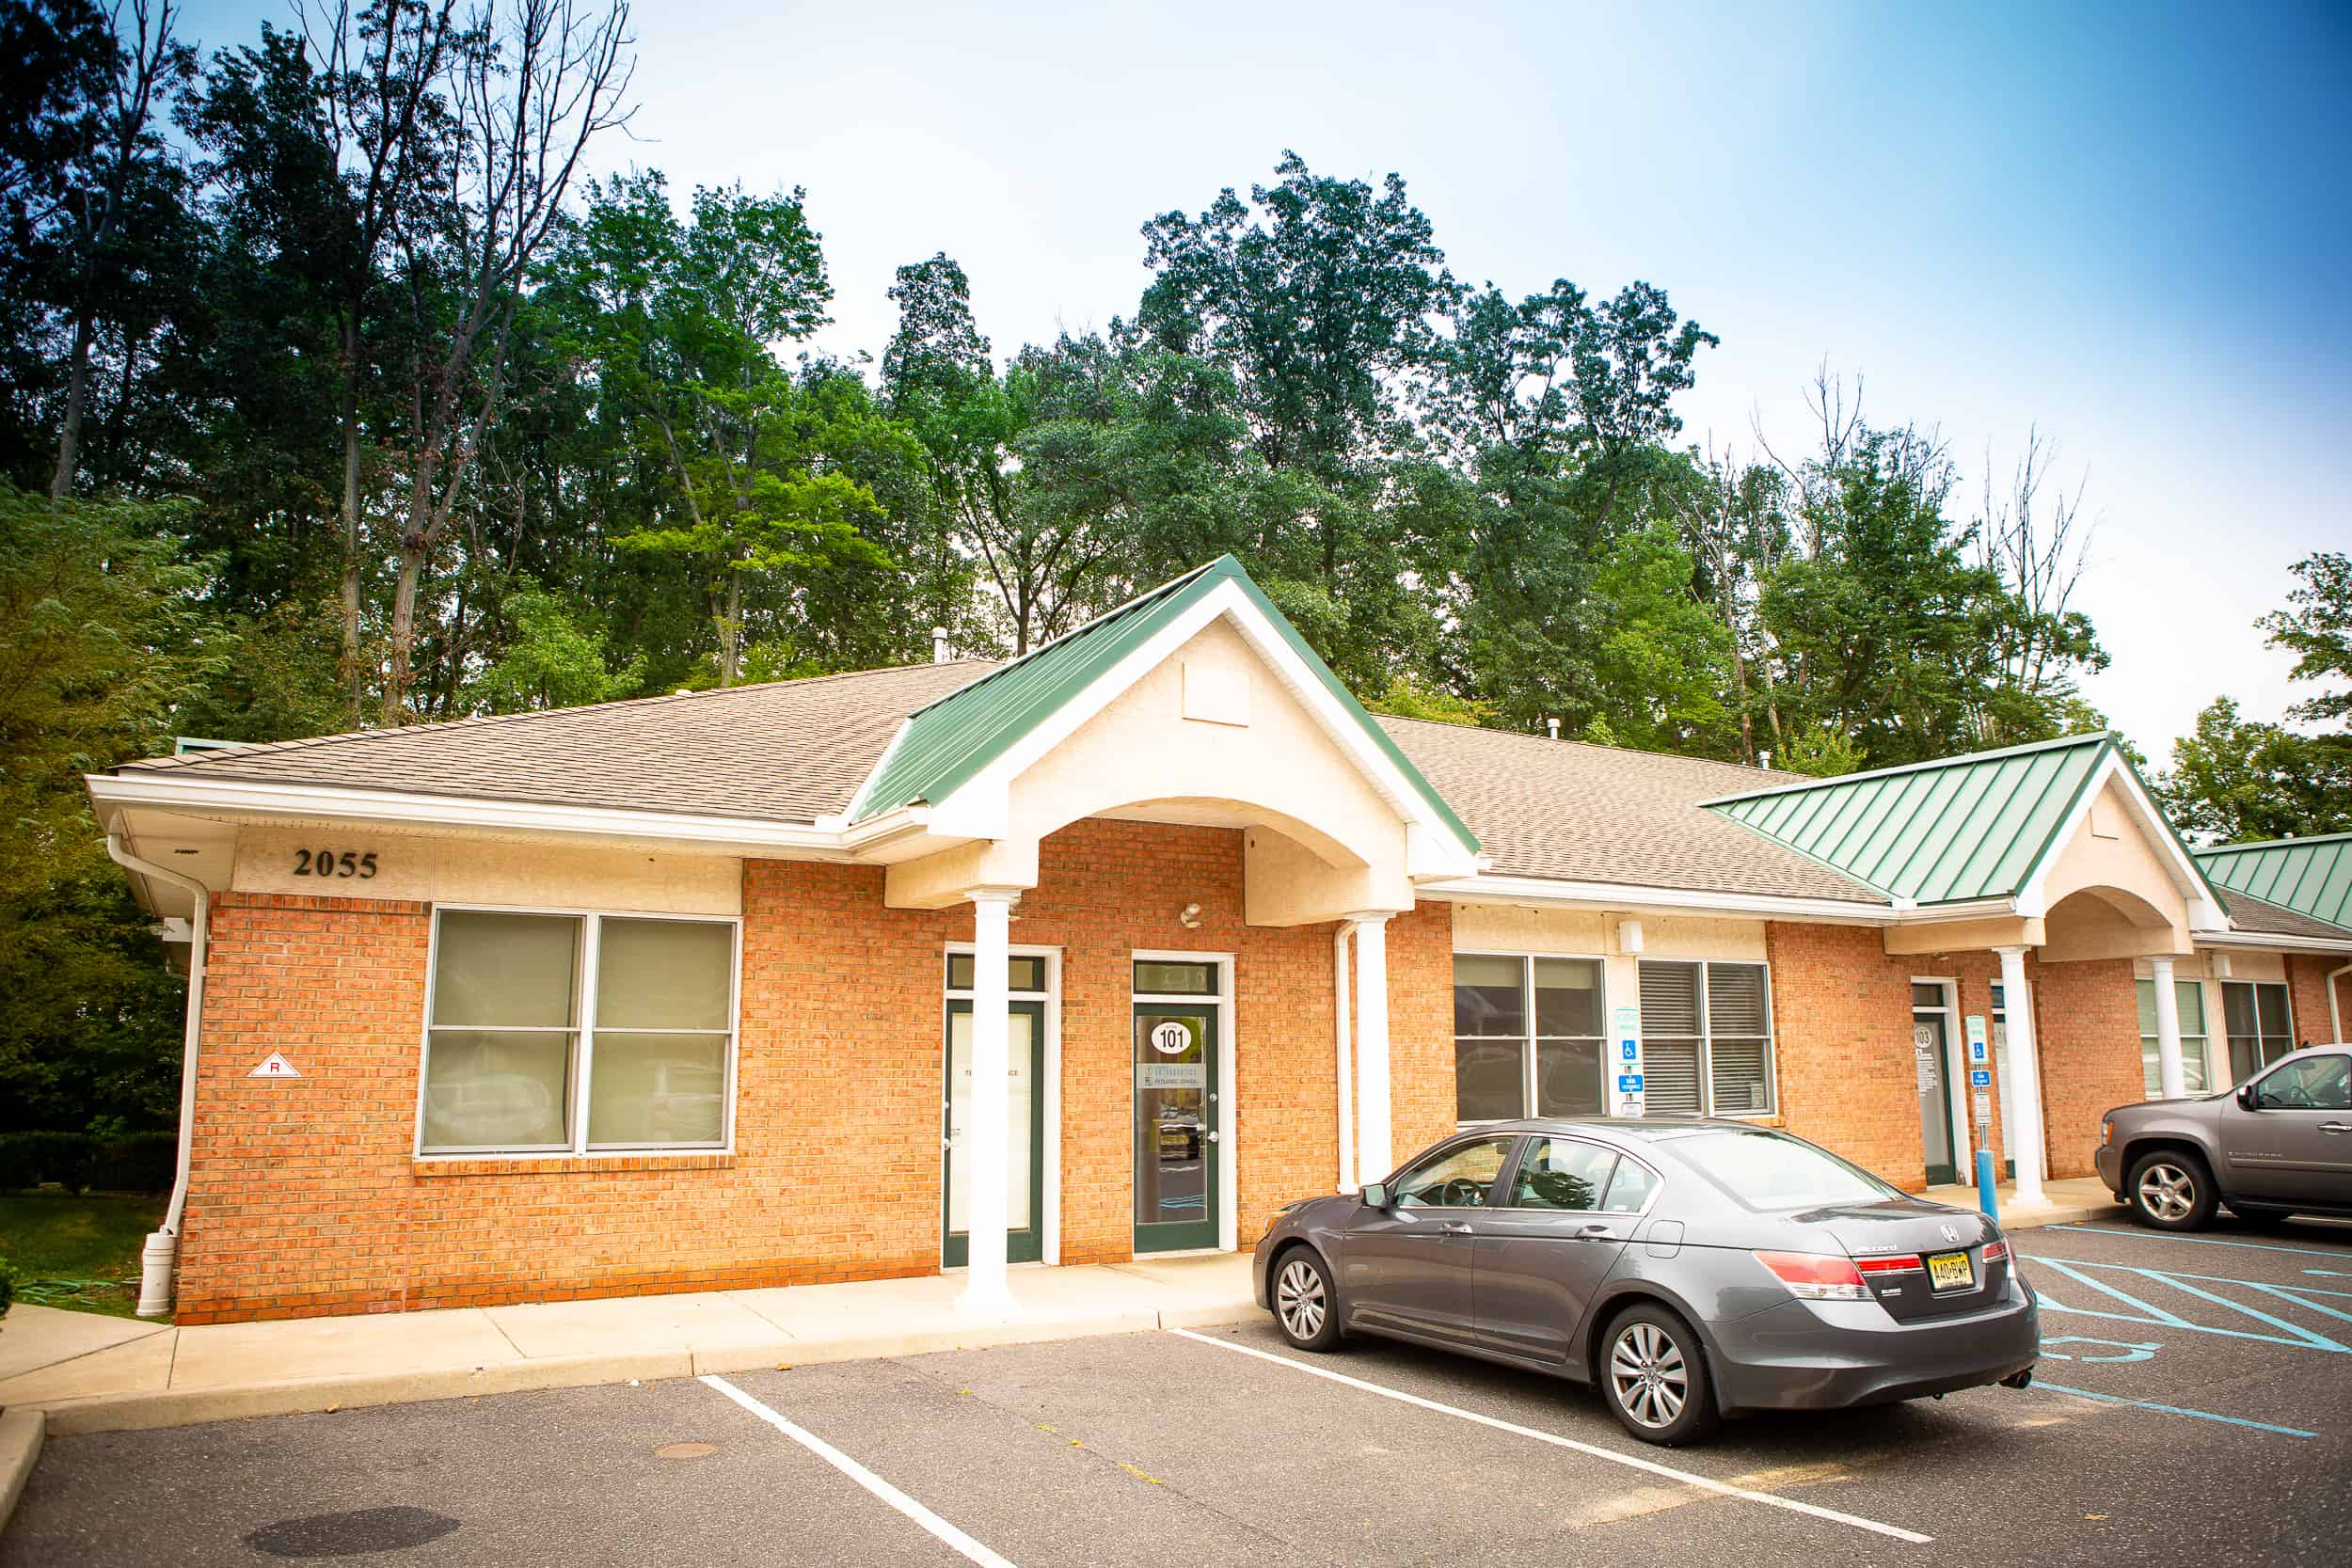 Mount Laurel Dental Location Opened